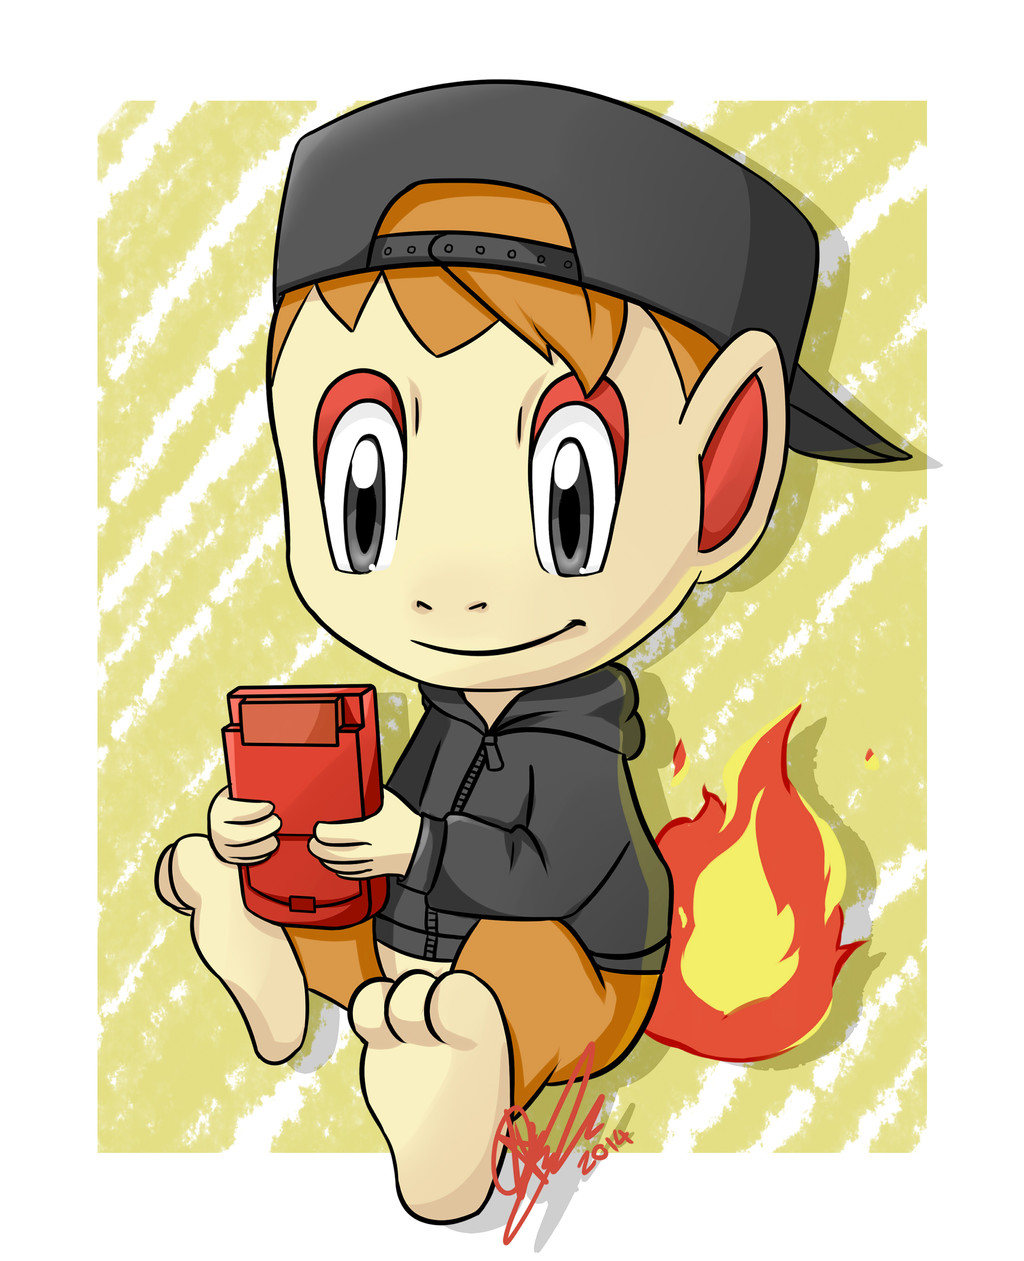 Chimchar commision! <3